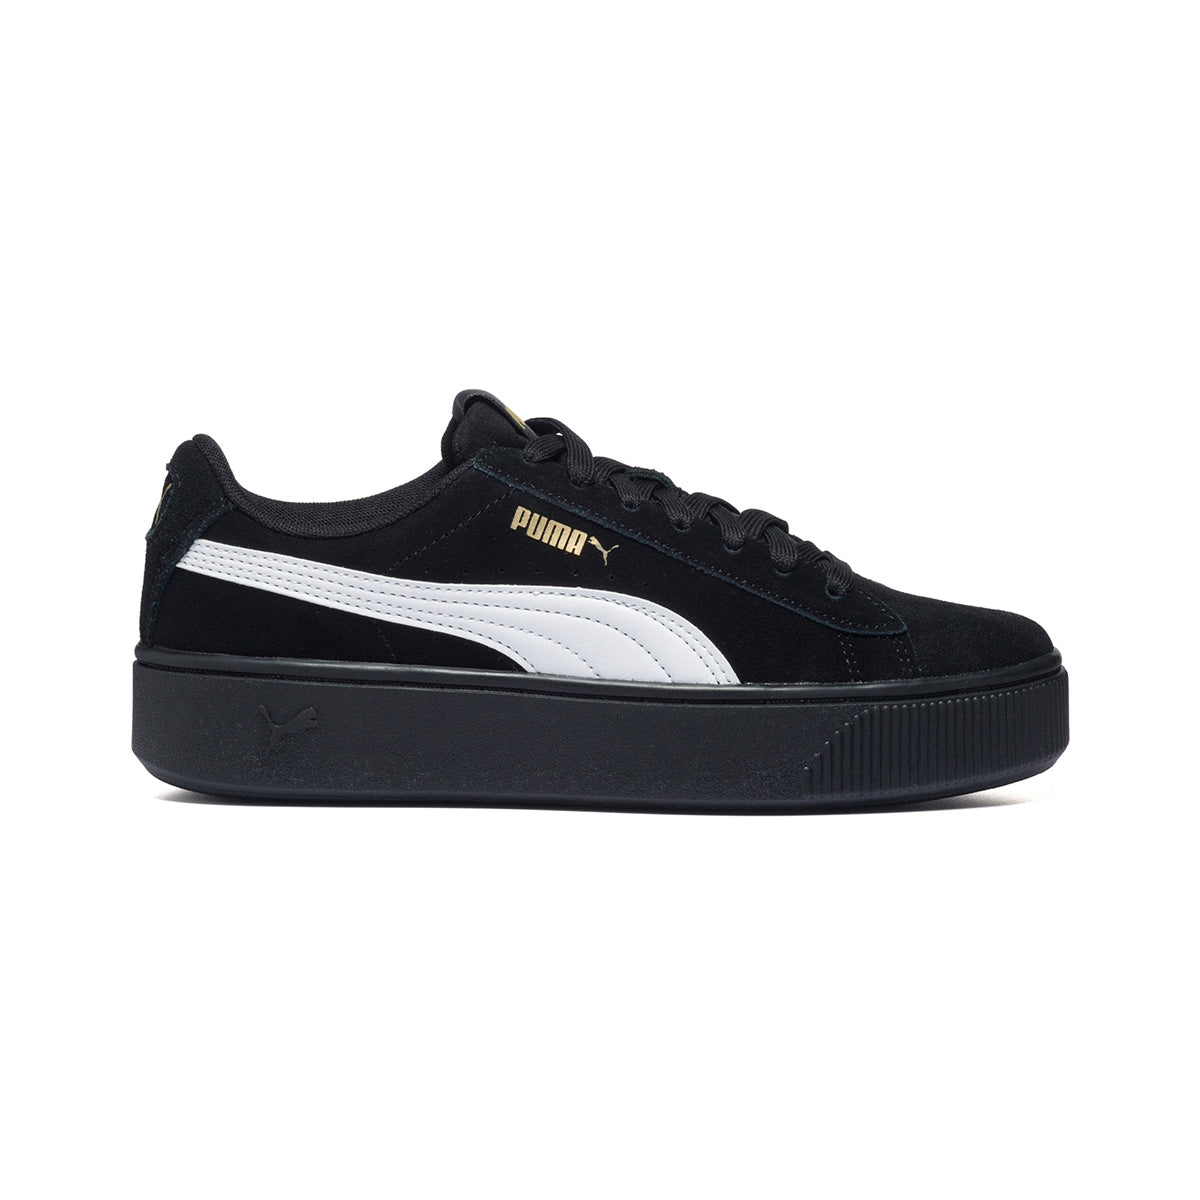 Sneakers Puma Vikky Stacked Sd, Donna, SKU s312000005, Immagine 0